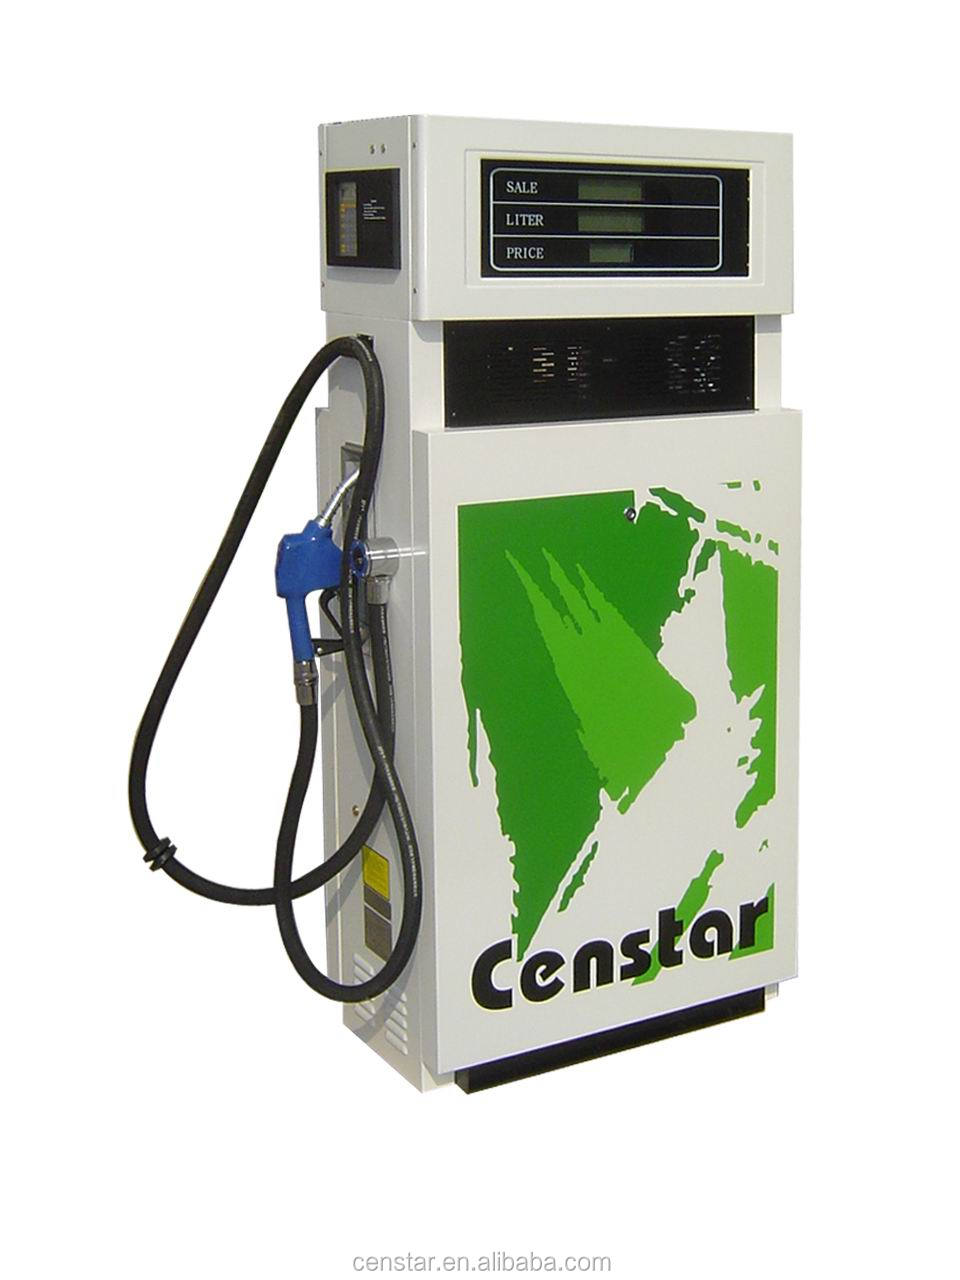 CS10 Atex certified one nozzle one pump gasoline dispenser, steel structure beautiful looking measured pump dispenser